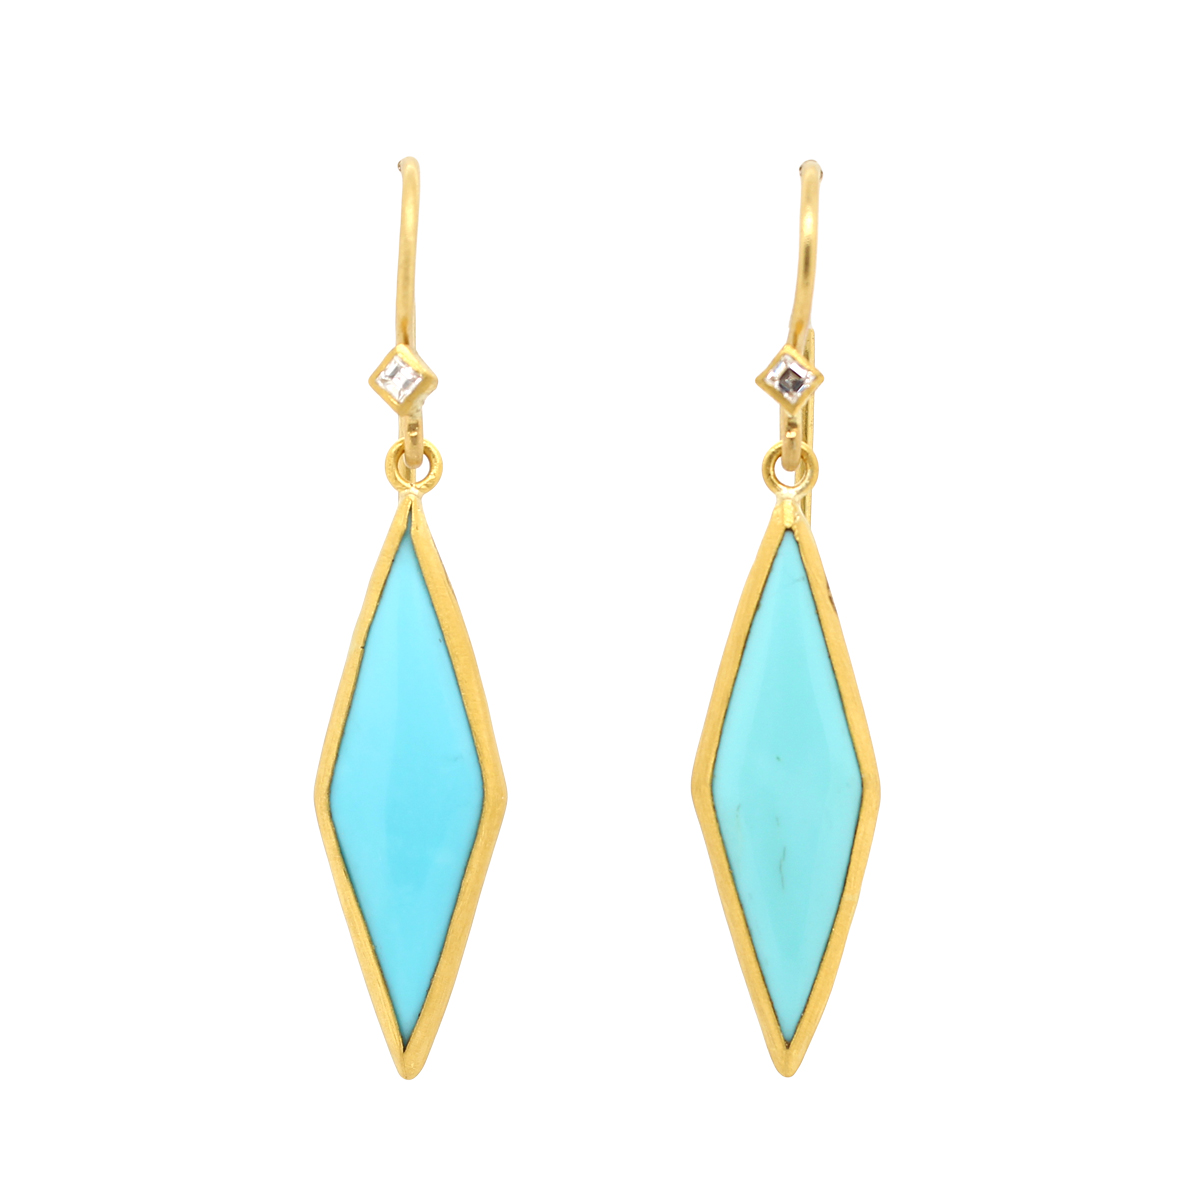 "Lika Behar 24 Karat Yellow Gold Turquoise ""Kite"" Earrings"